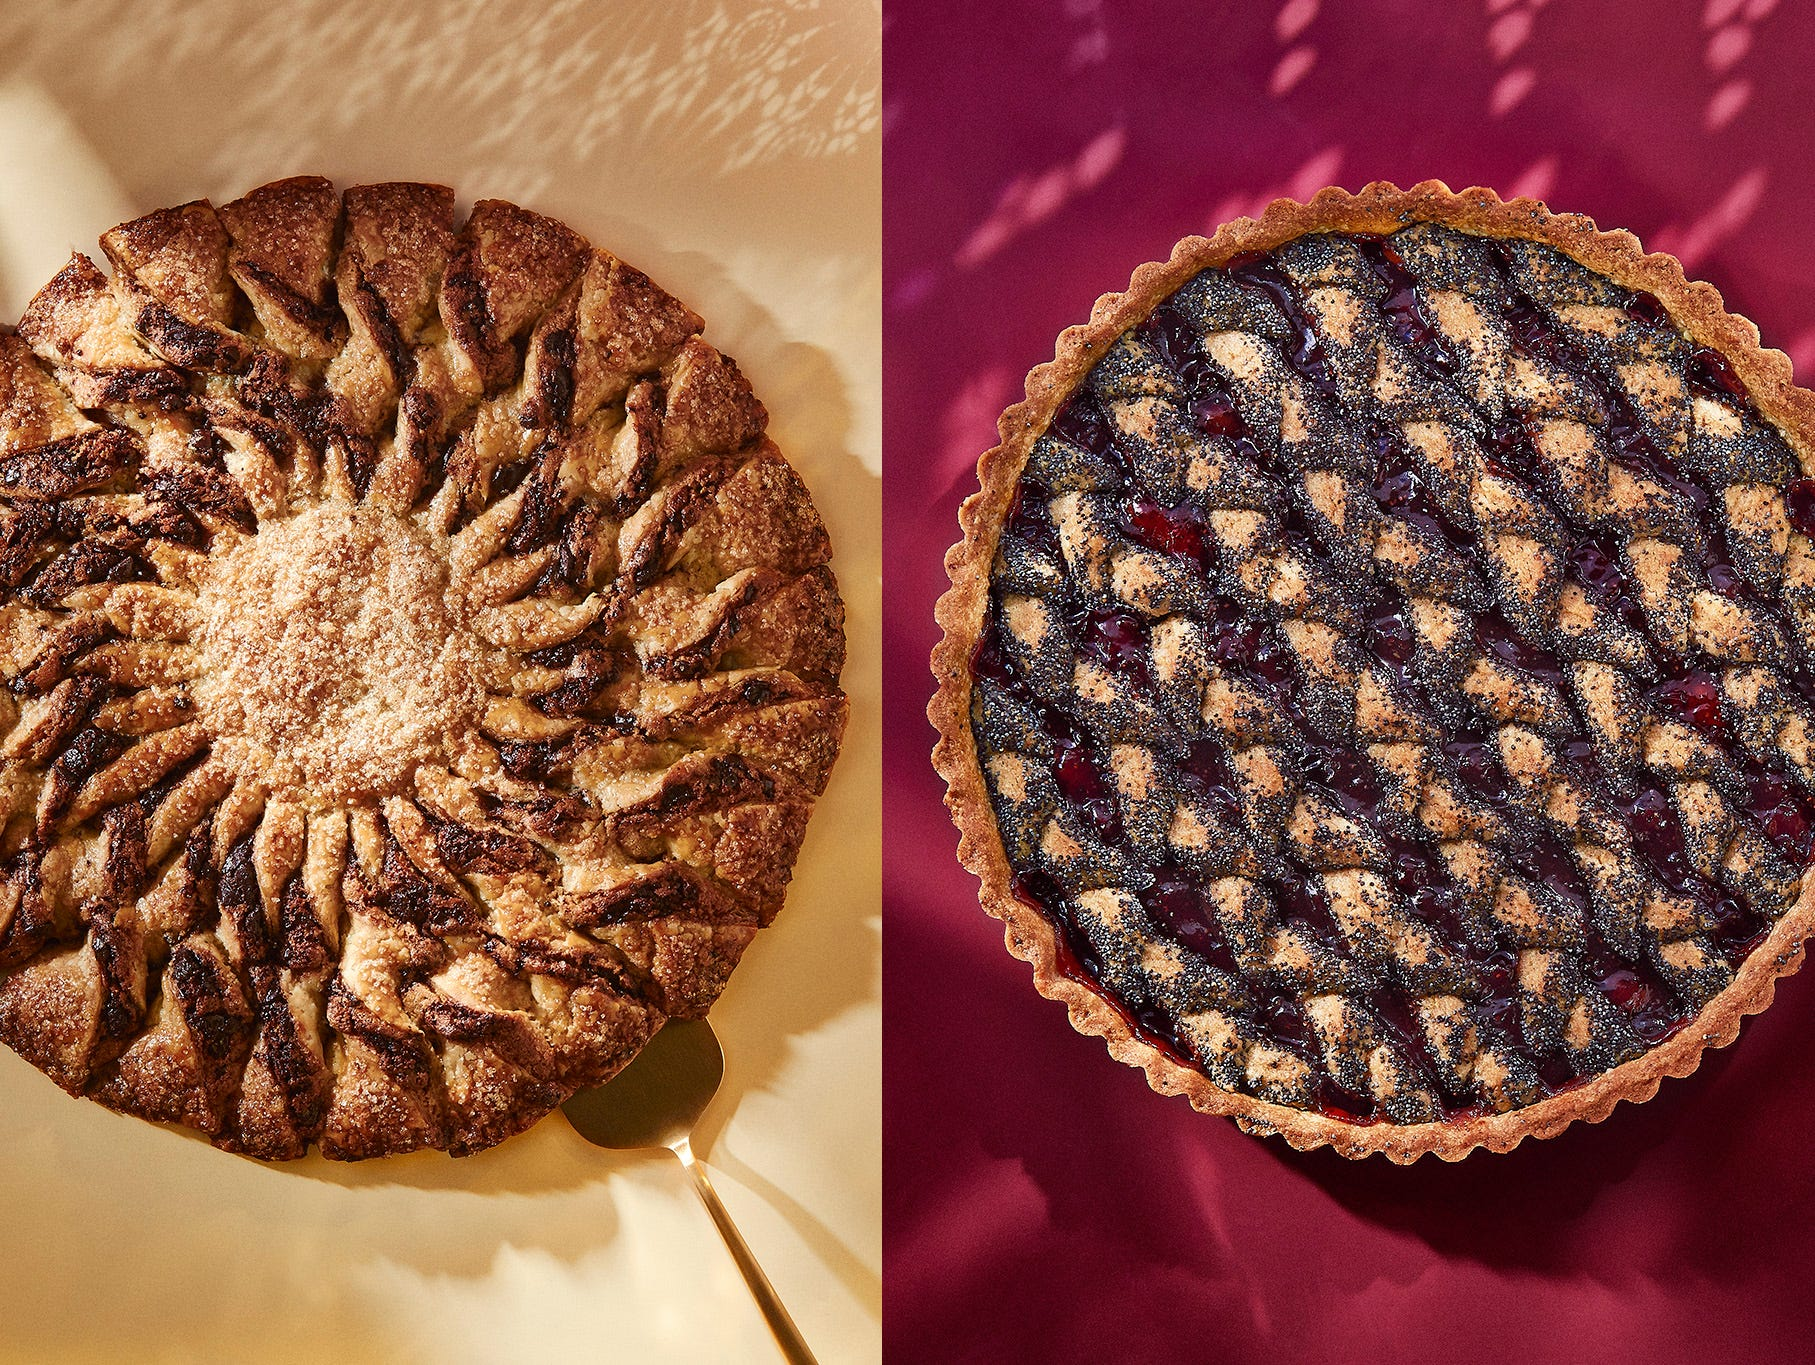 Chocolate-Sesame Tarte Soleil and Red-Currant Poppyseed Linzer Torte will add flair